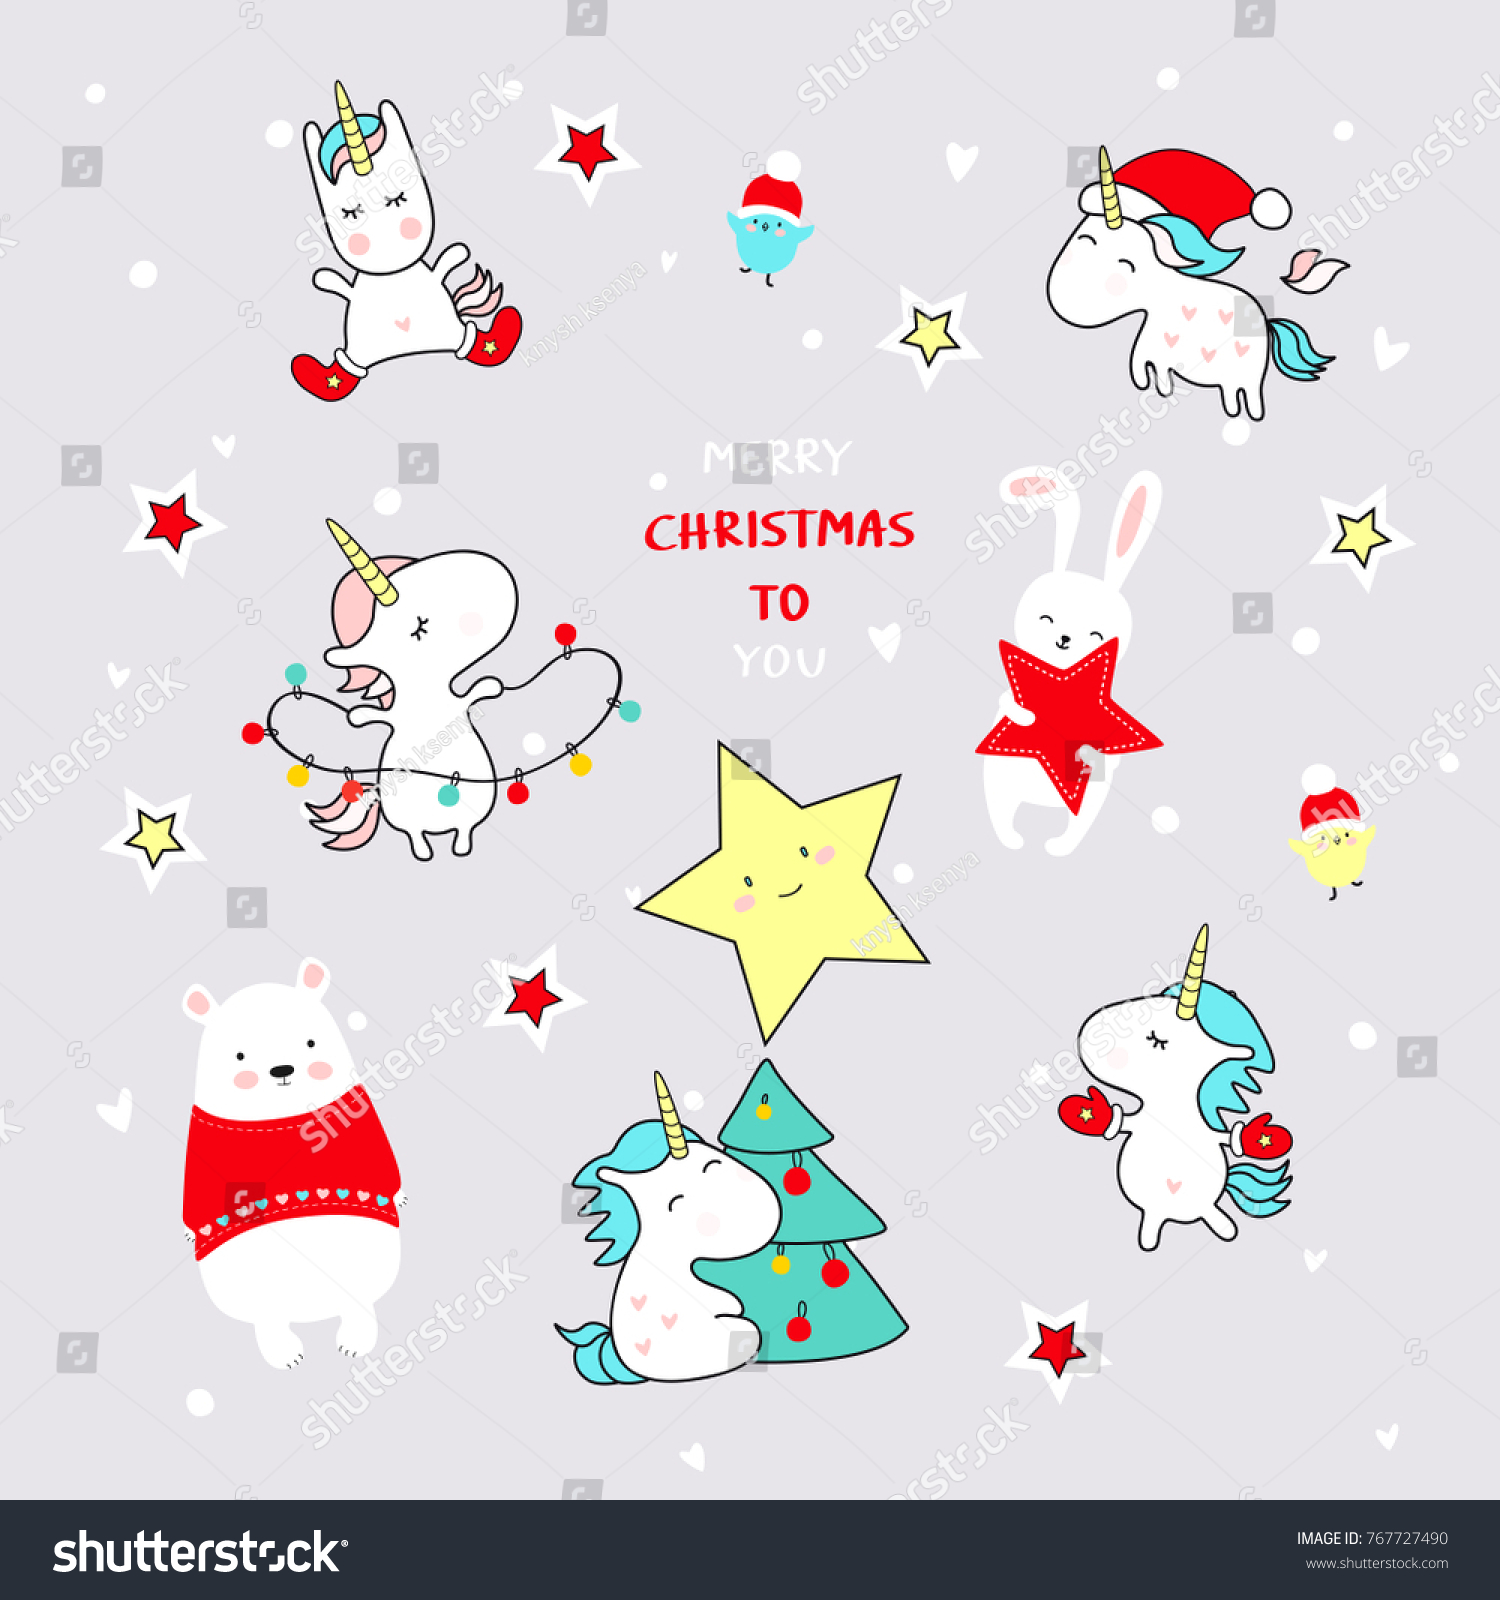 cute christmas comic unicorns and friends new year background